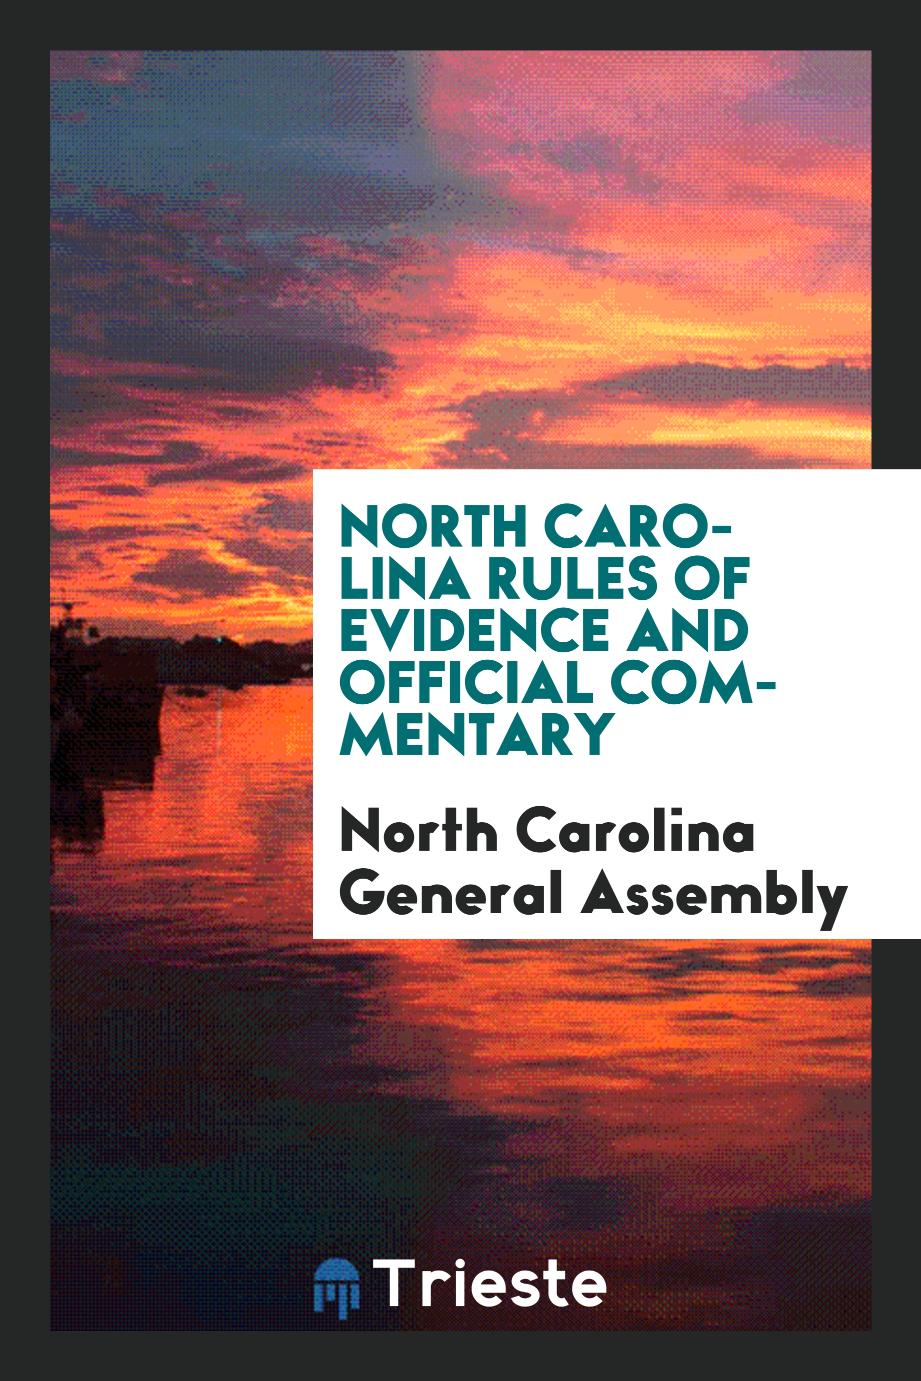 North Carolina rules of evidence and official commentary